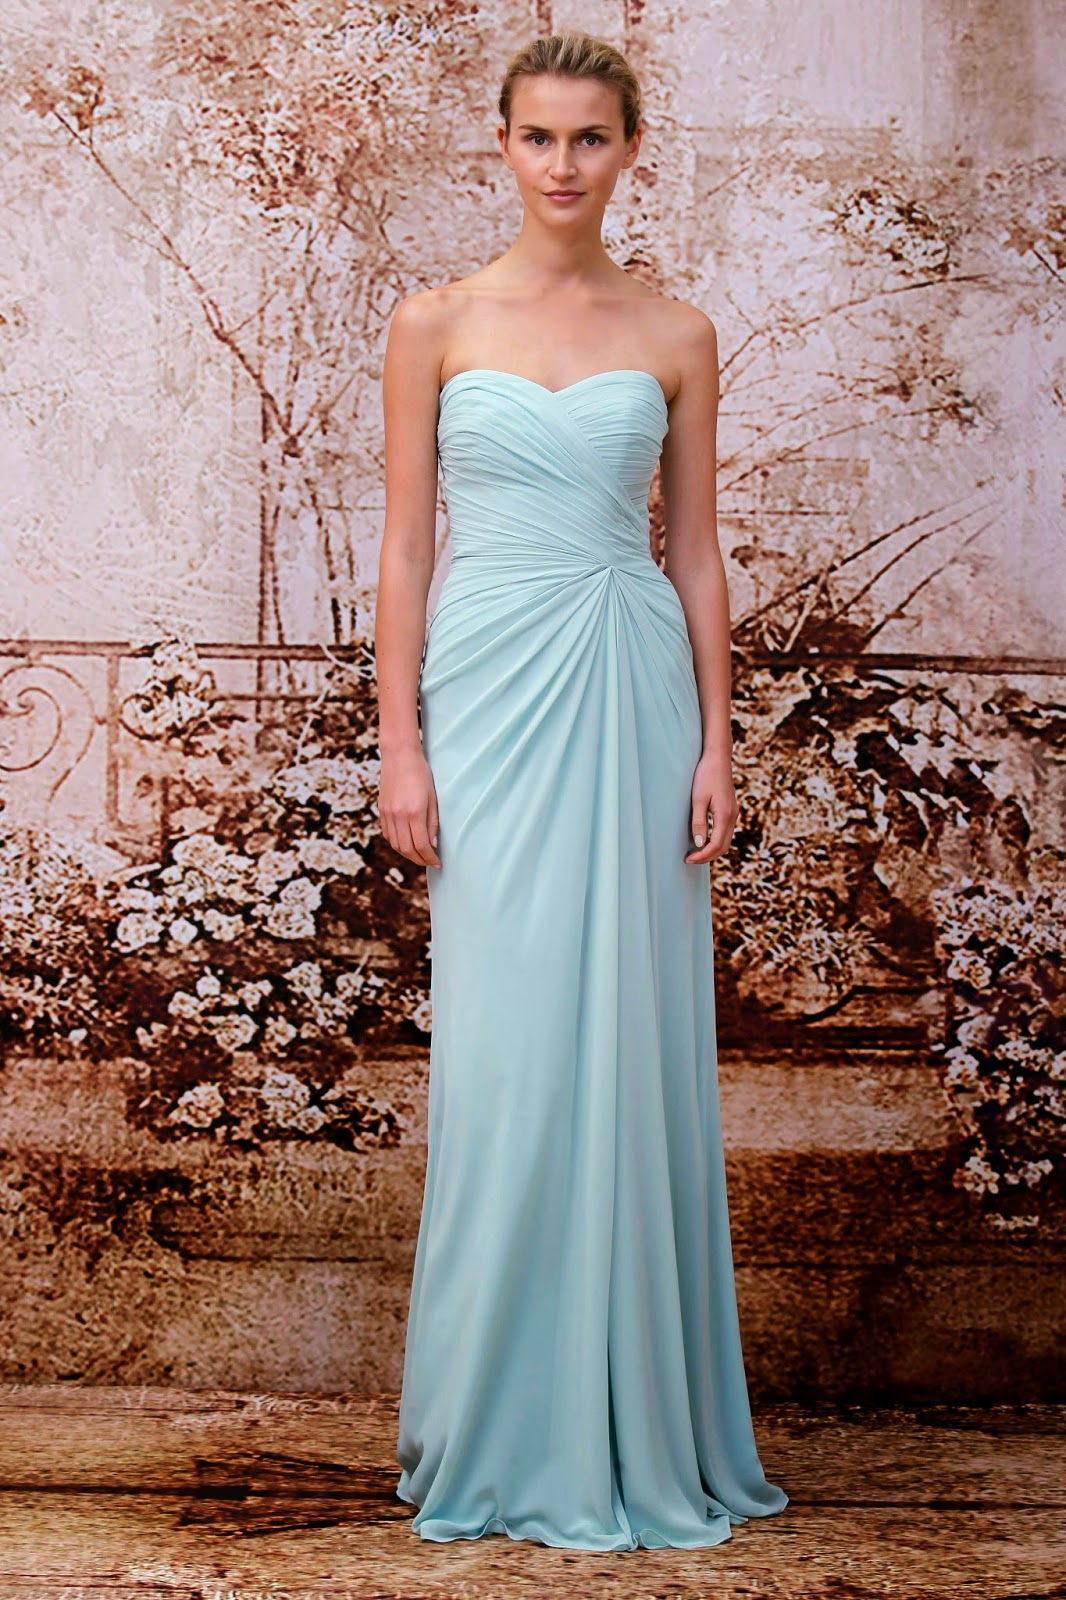 For the bride magazine monique lhuillier fall 2014 bridesmaids draping is key when looking for bridesmaid dresses to suit girls of all shapes and sizes this flattering style will make it easy to select a dress that all ombrellifo Images